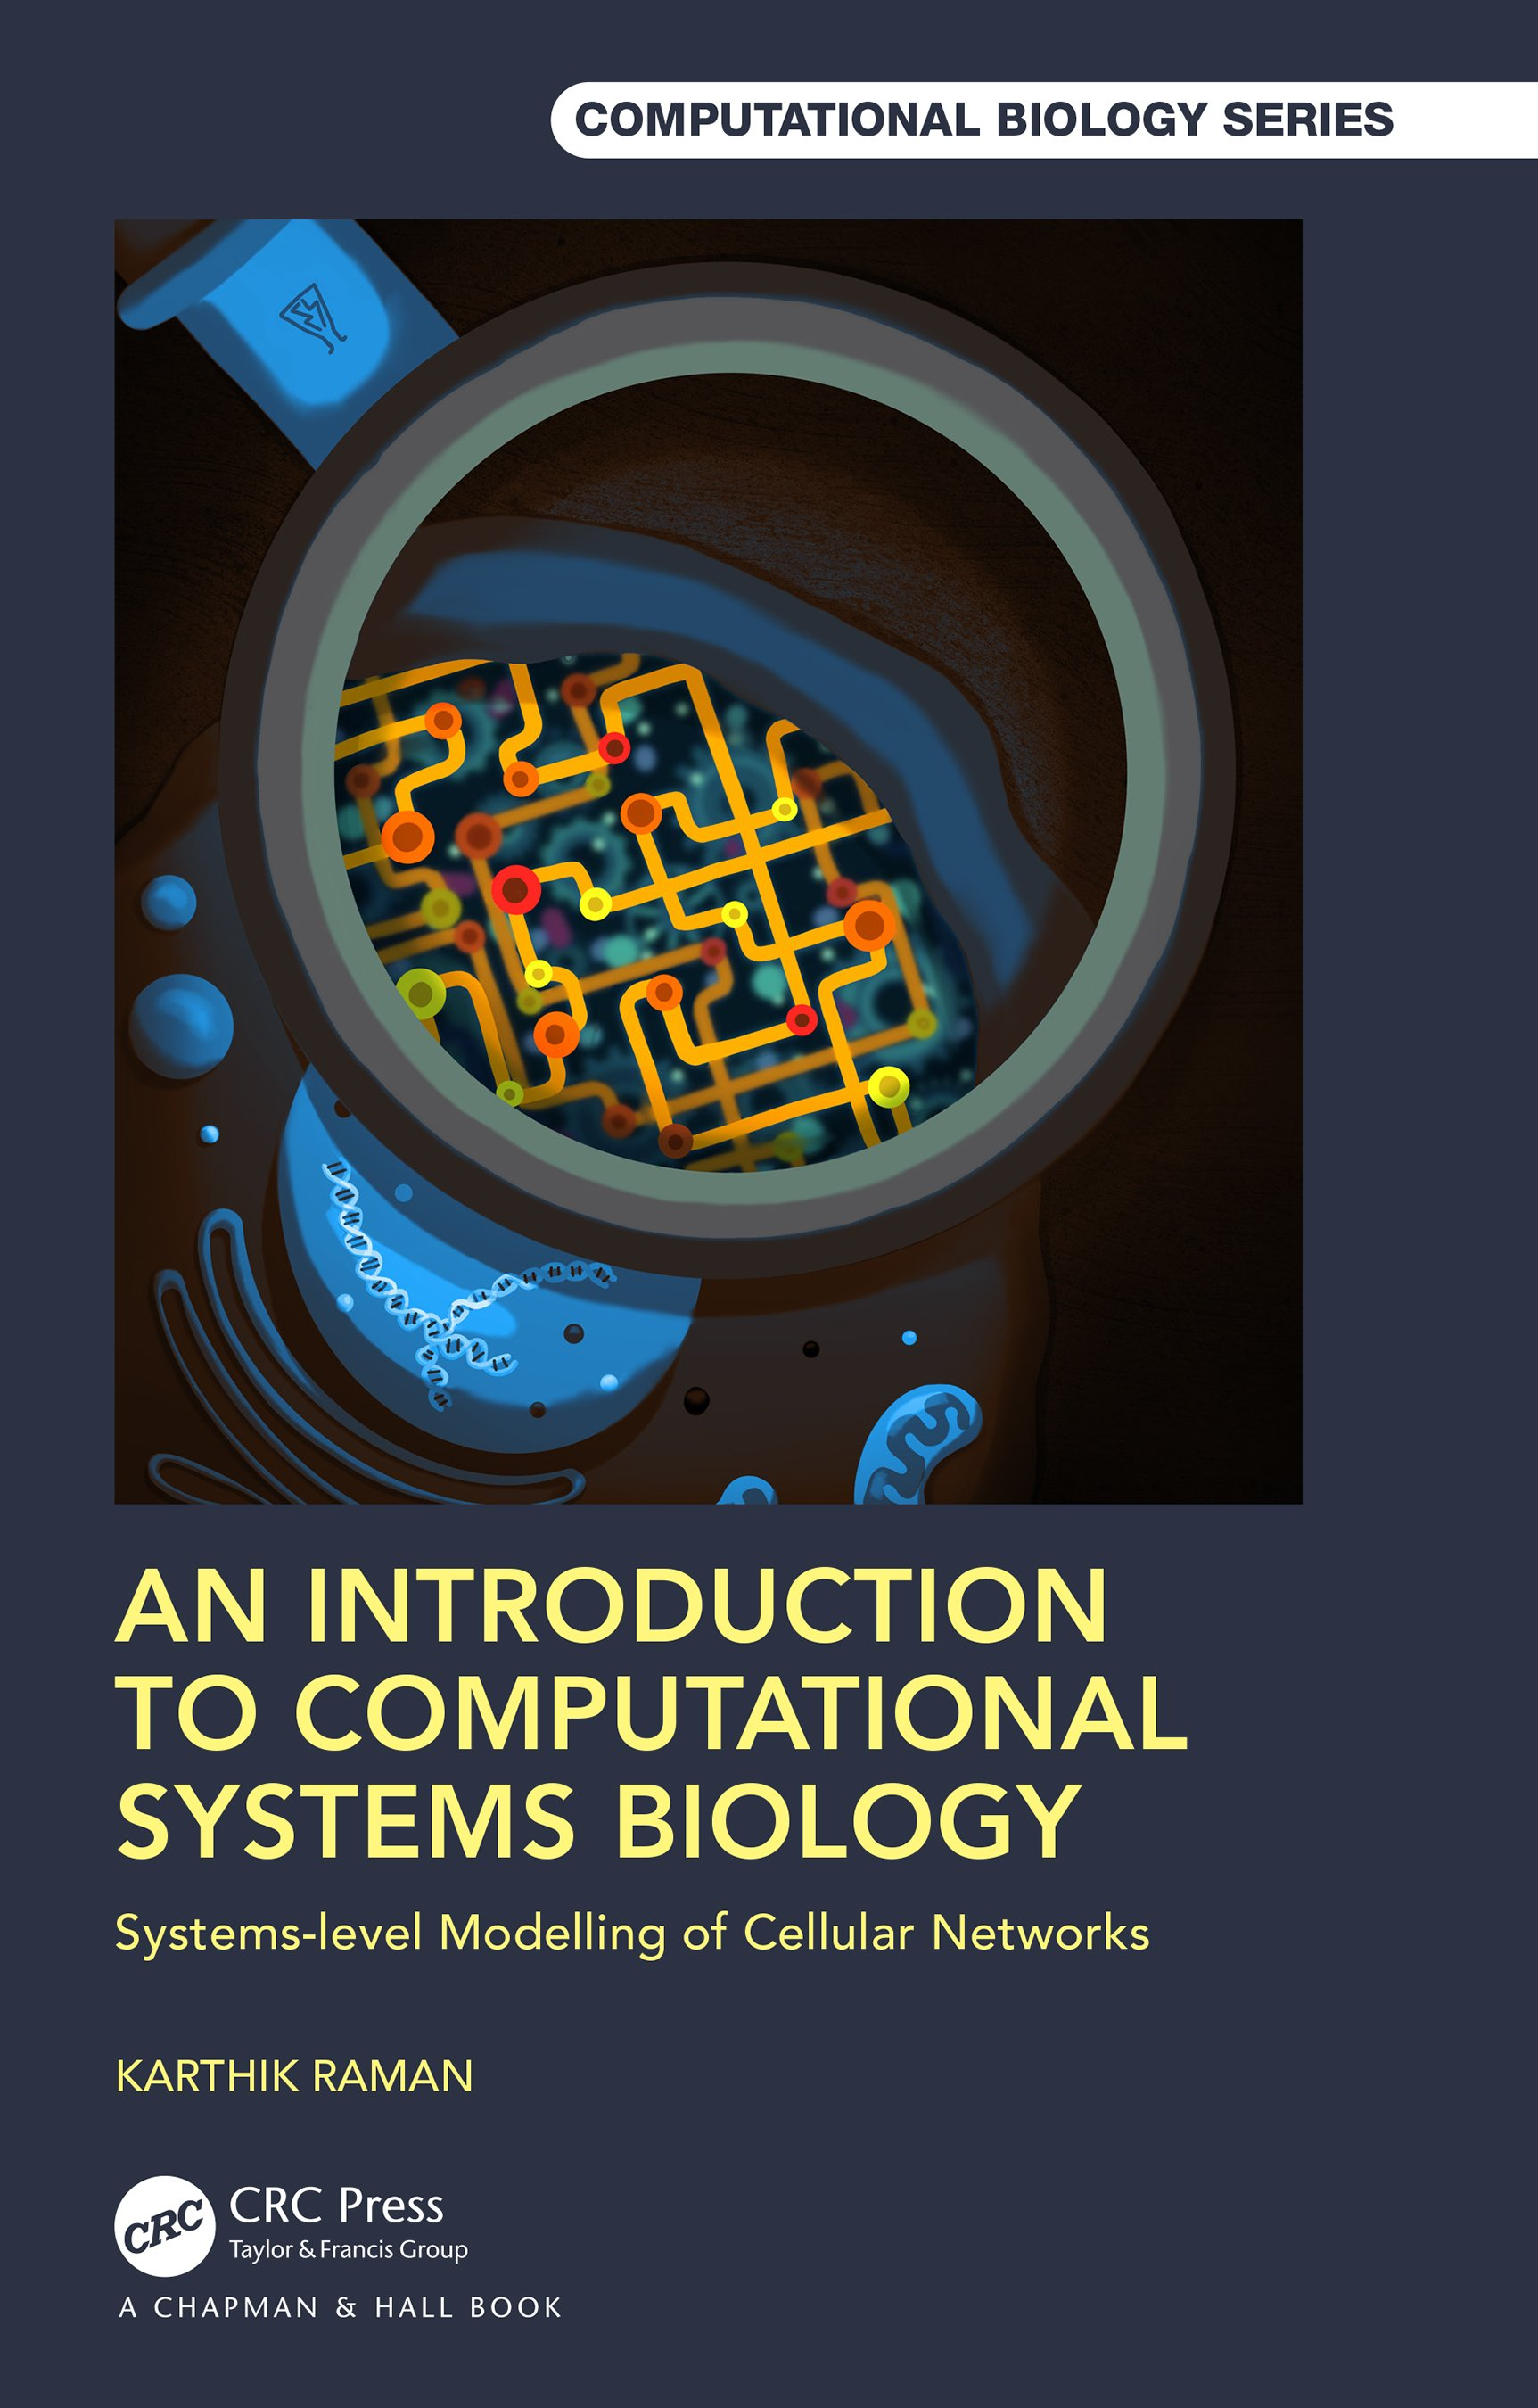 An Introduction to Computational Systems Biology